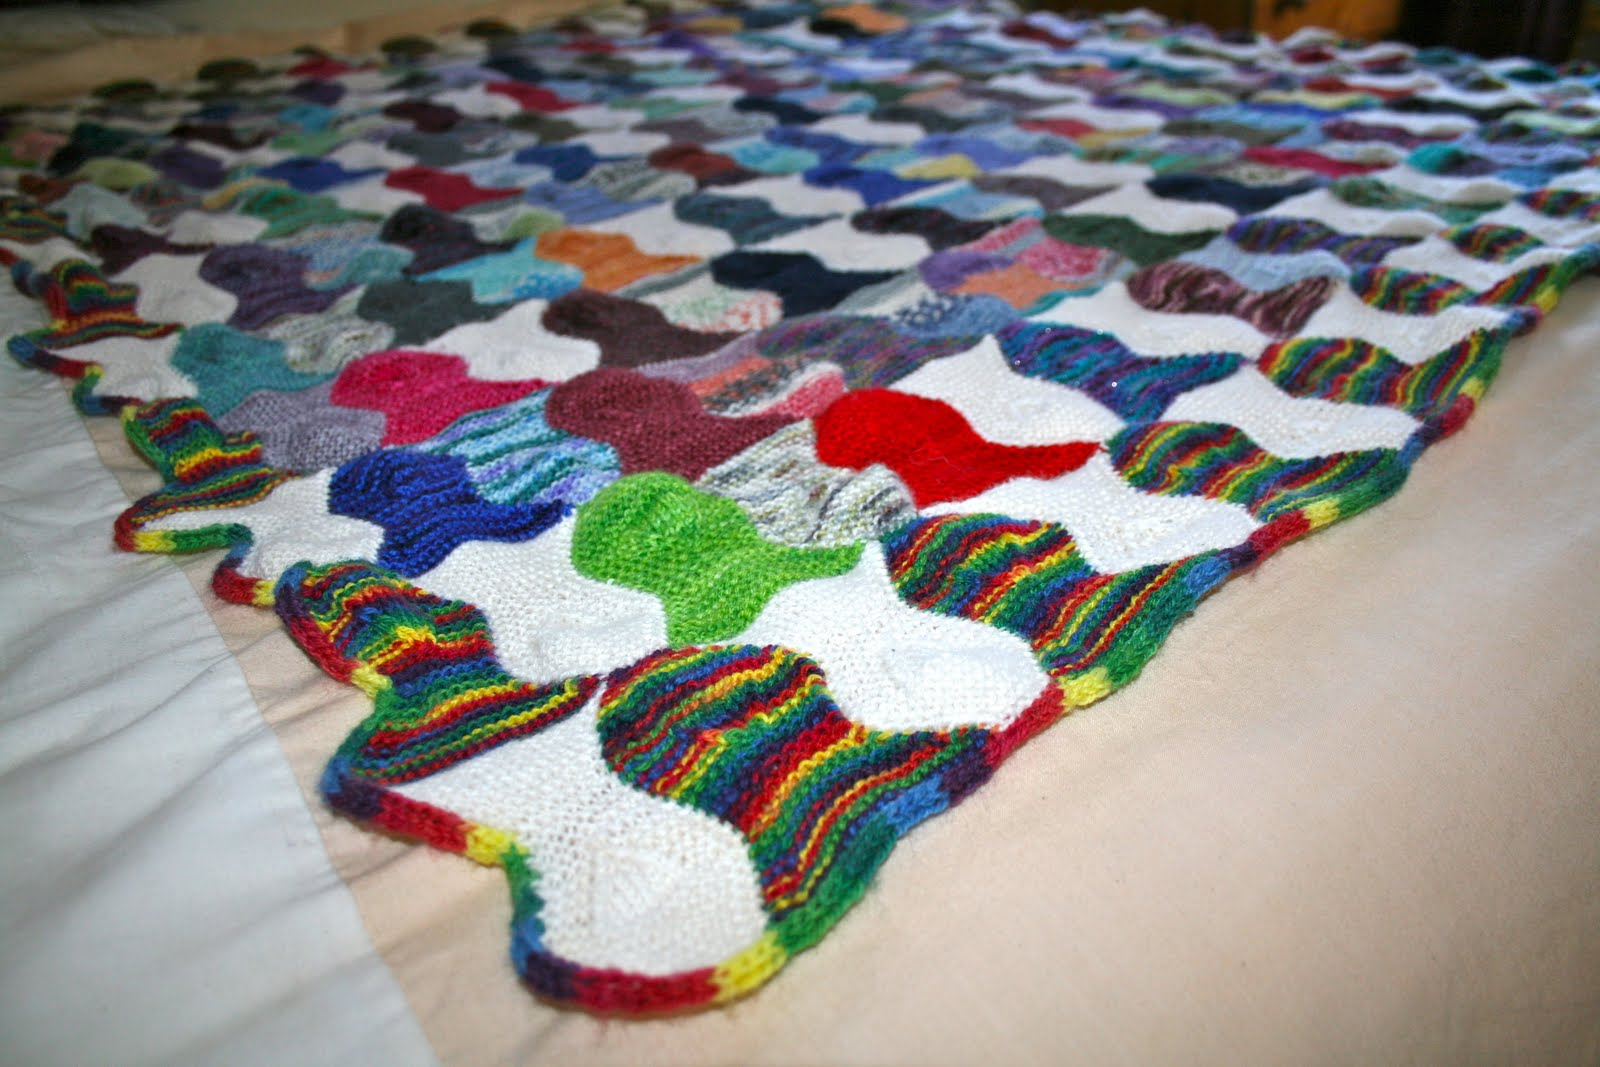 knitted fish blanket pattern - 28 images - eat knit knit the fish ...